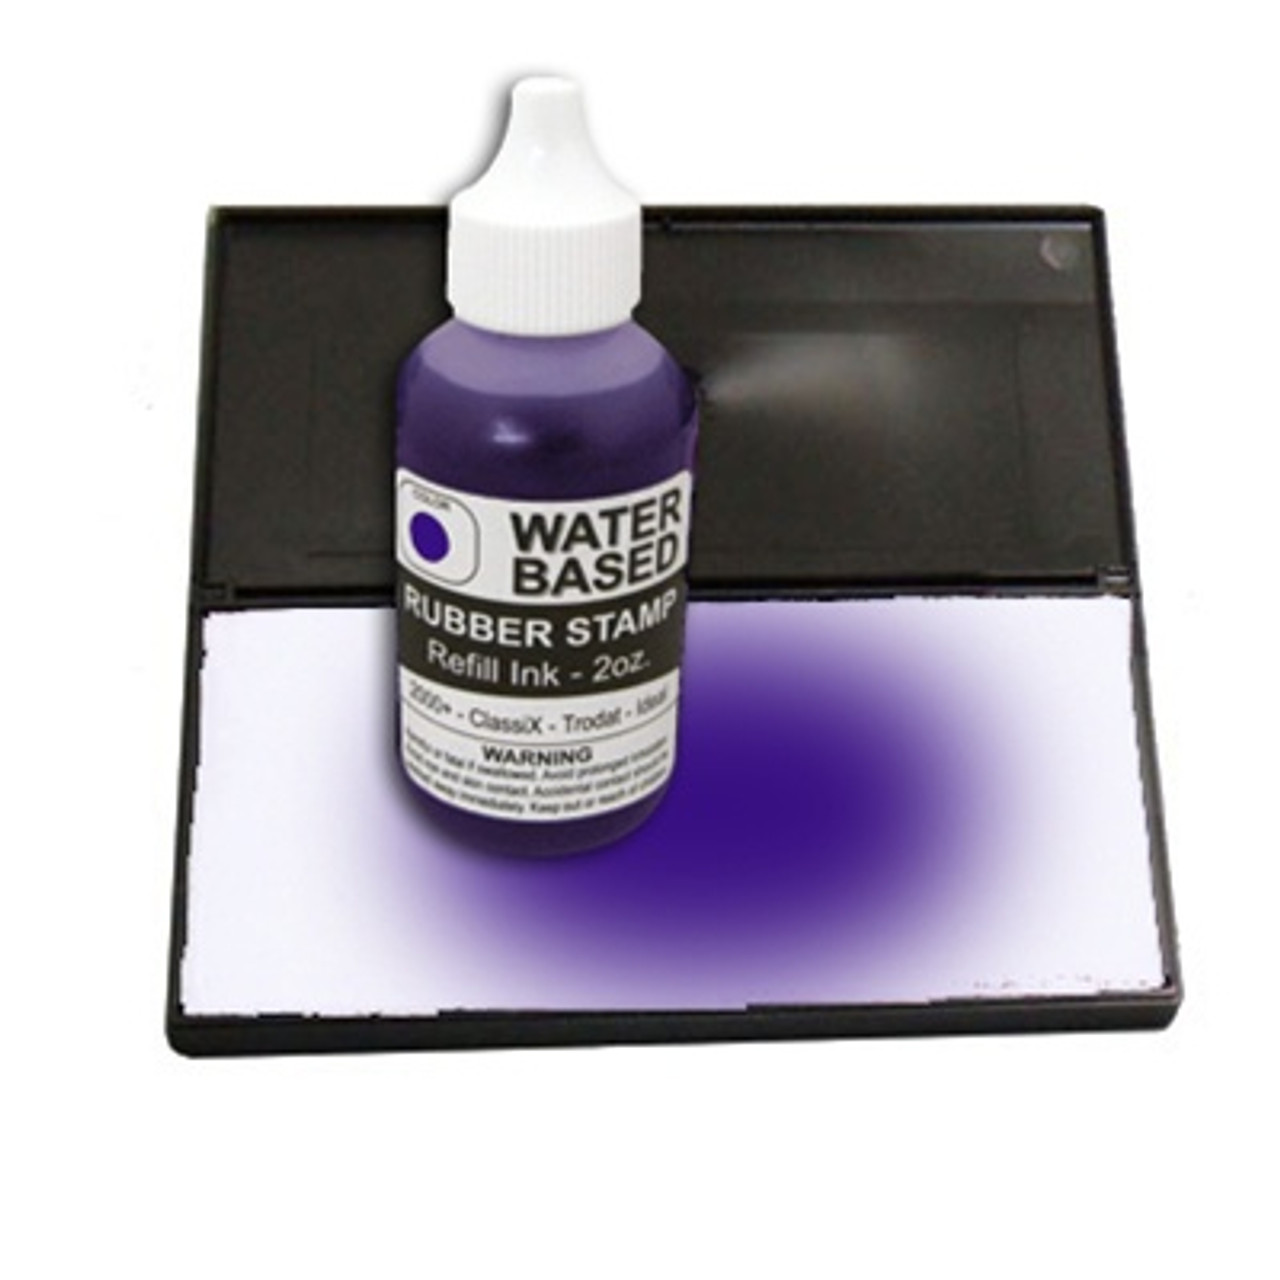 Dry stamp pad with purple ink bottle